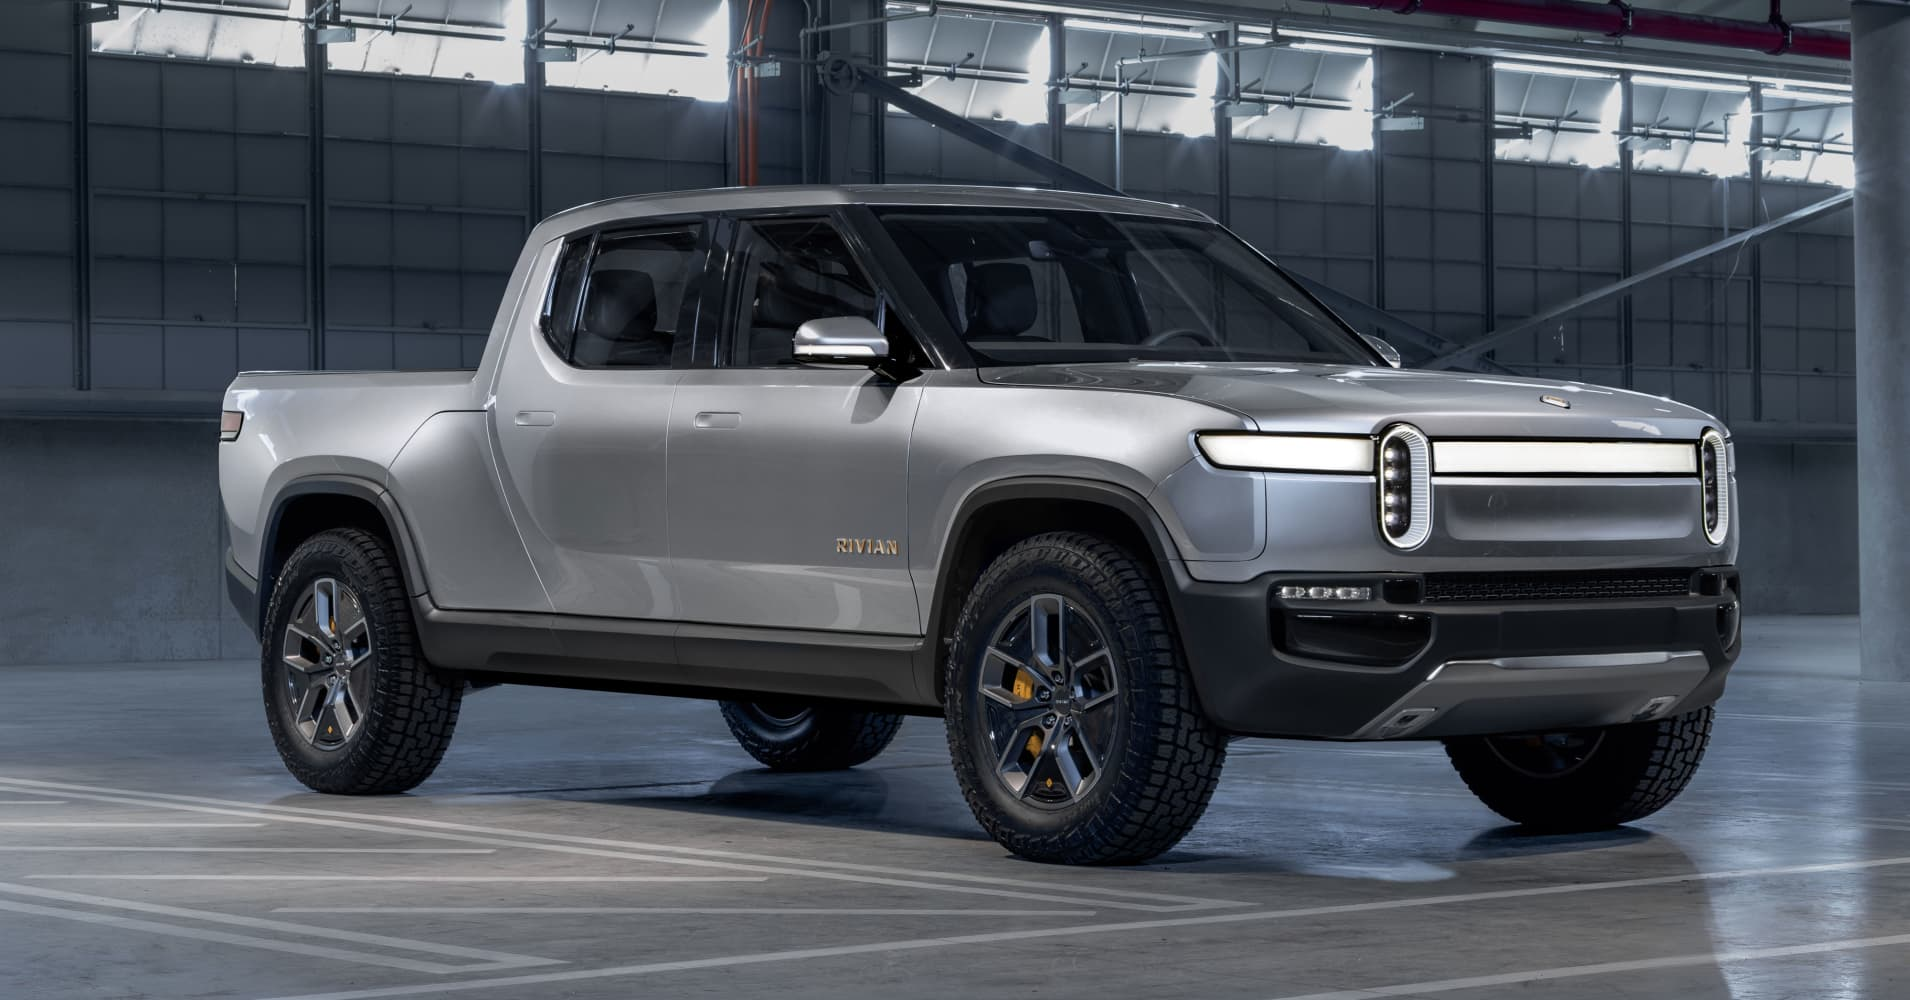 Rivian announces $700 million investment round led by Amazon